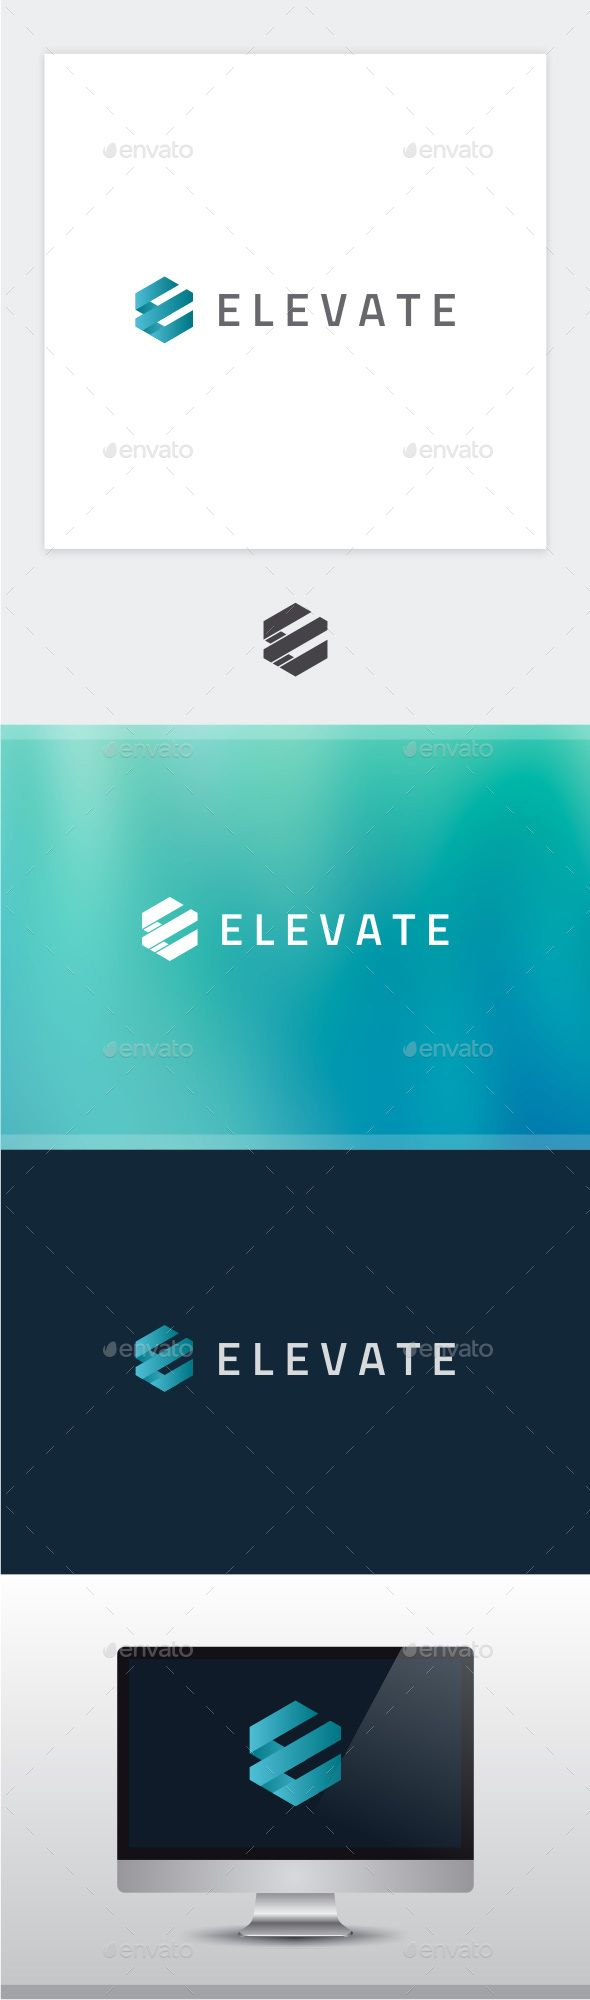 Elevate - Letter E Logo — Photoshop PSD #brand #vector • Available here → https://graphicriver.net/item/elevate-letter-e-logo/15586425?ref=pxcr